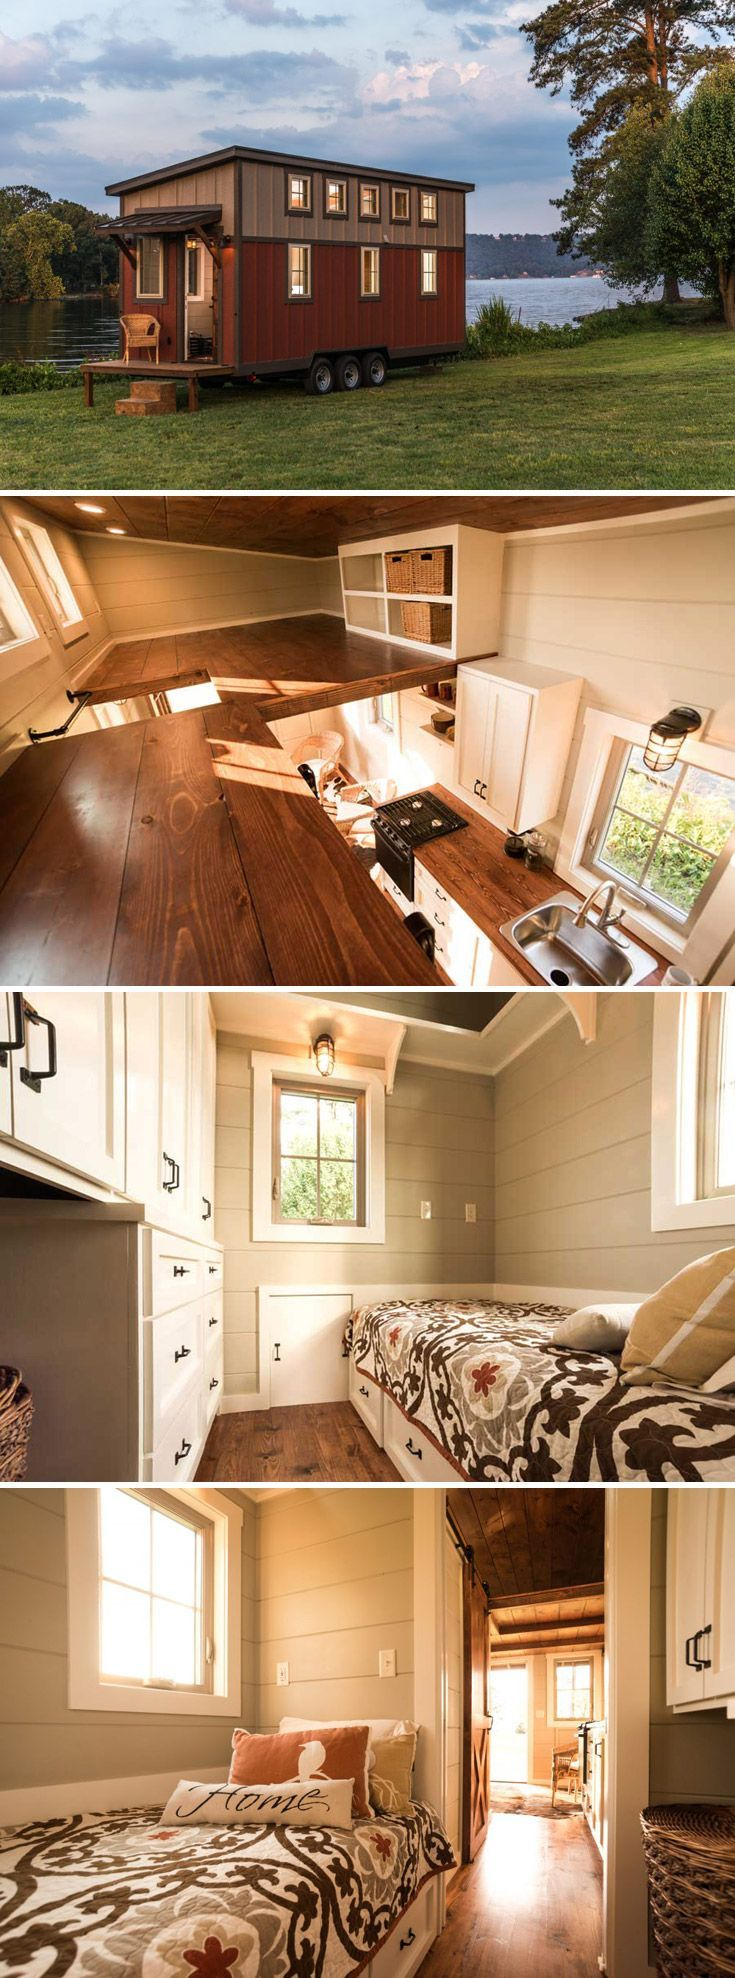 638 best House Tiny Home Ideas images on Pinterest Small homes